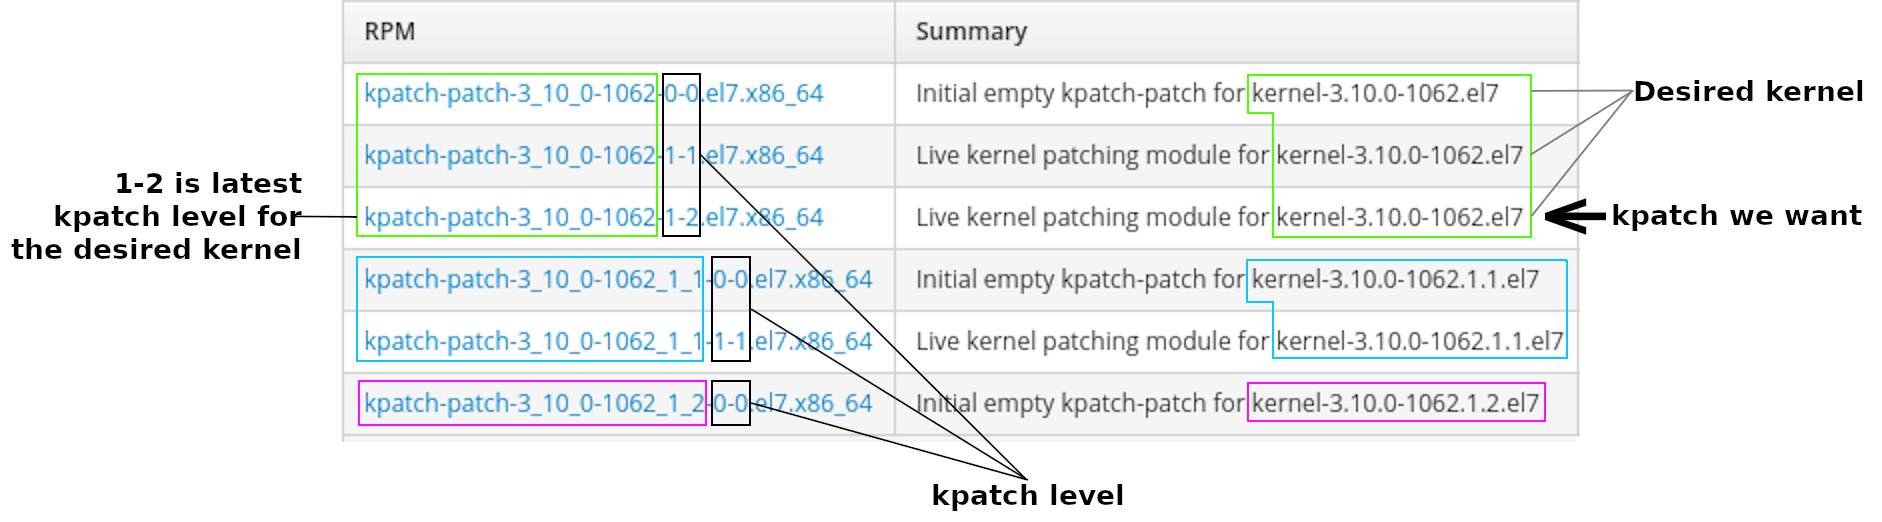 Displaying kpatch levels and desired patches